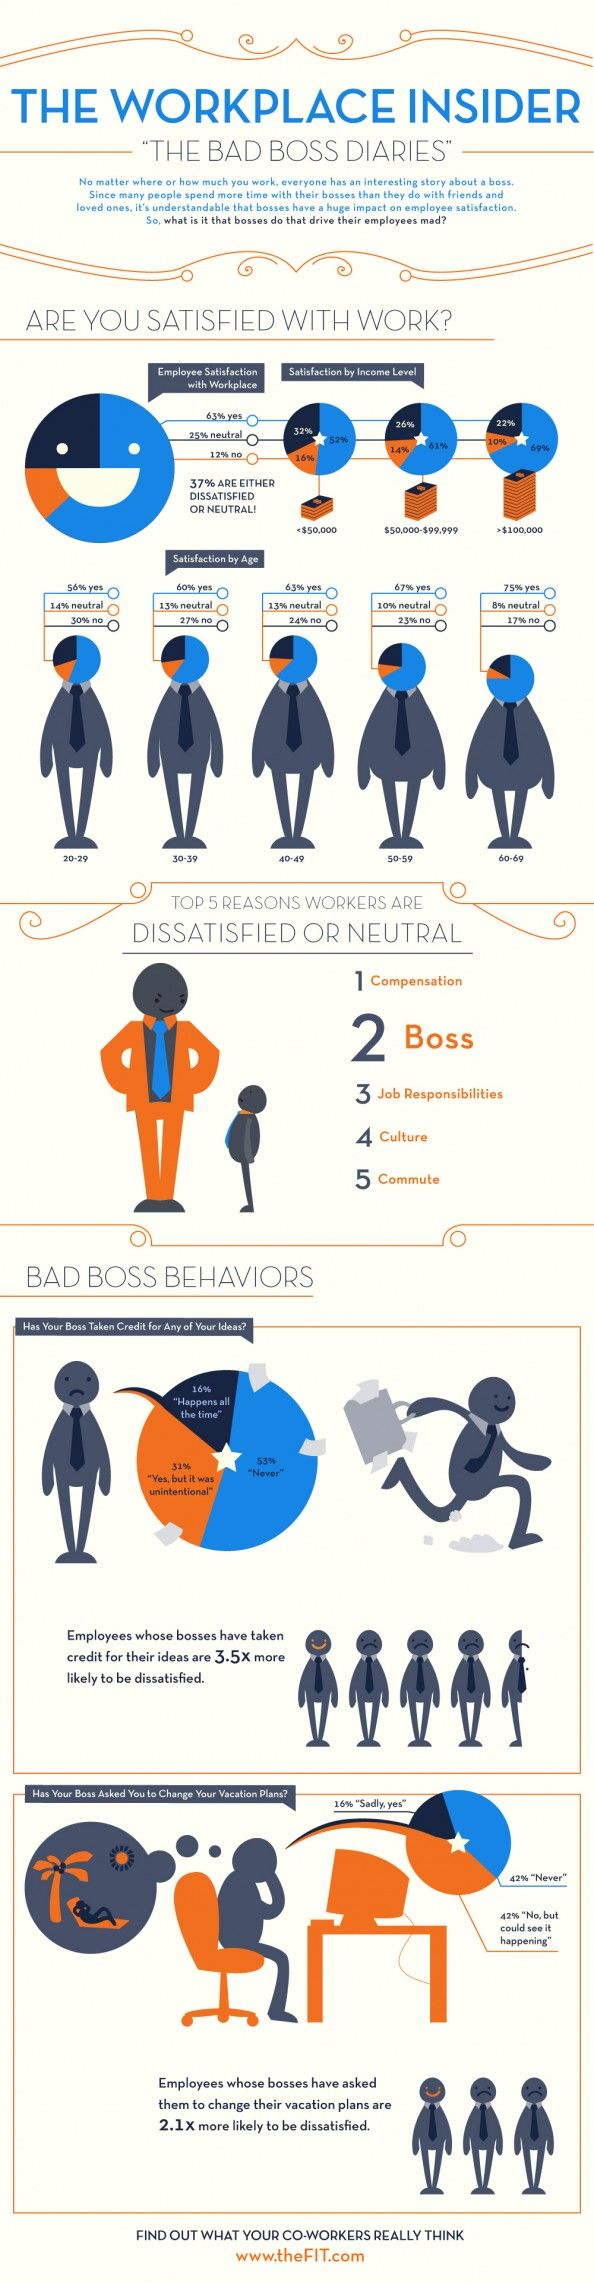 Did you know that 16 percent of employees stated that their boss took credit for their ideas?